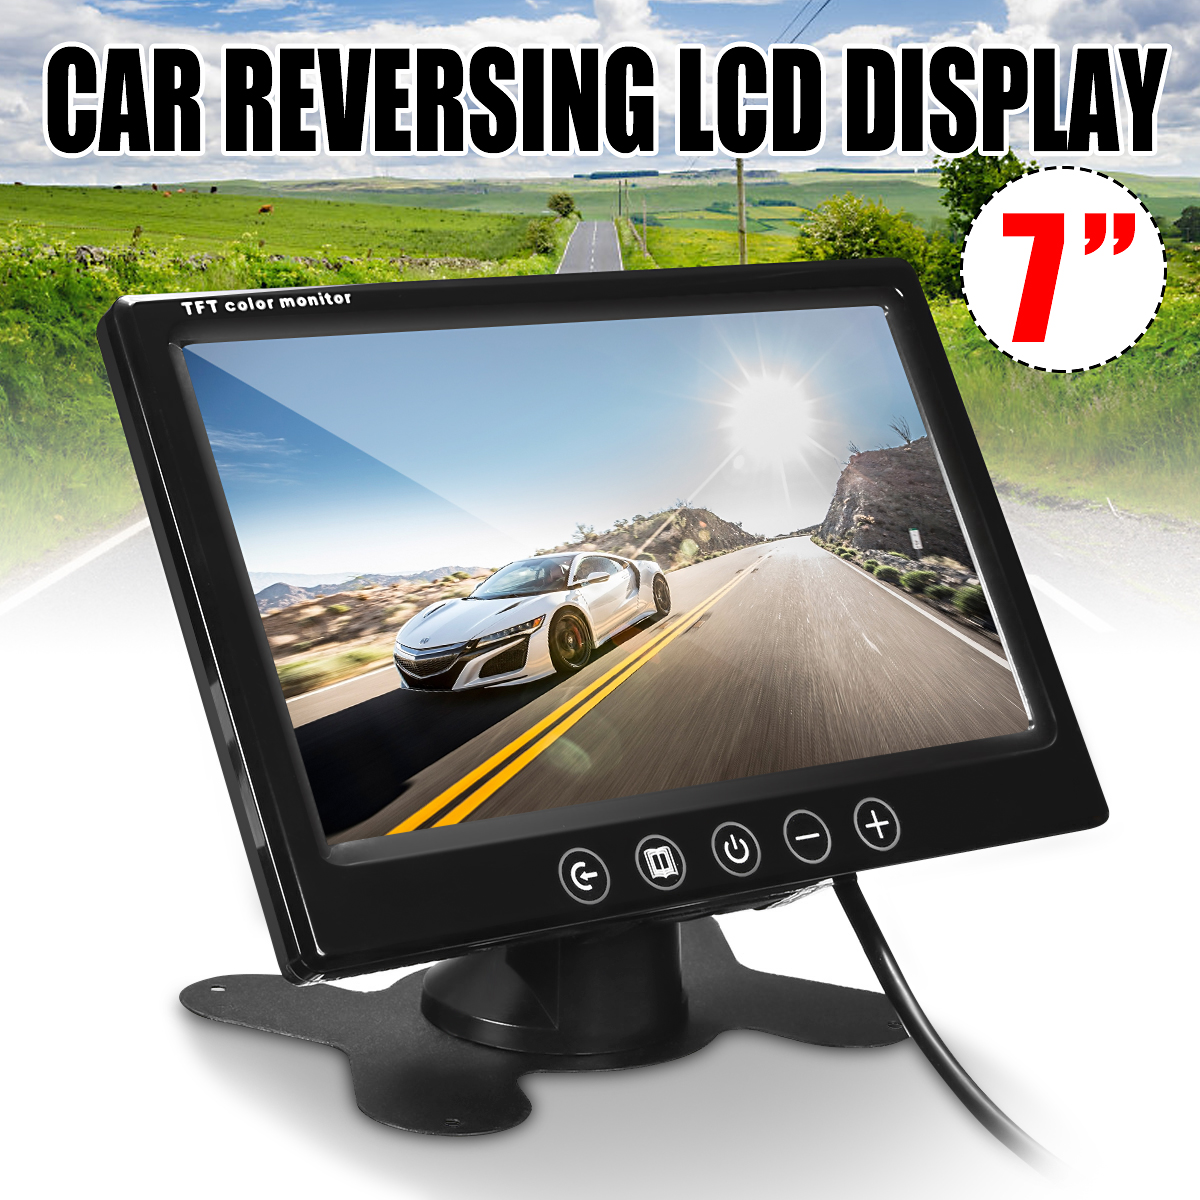 7'' TFT LCD HD Screen Monitor Car Rear View Reverse Parking Camera Security